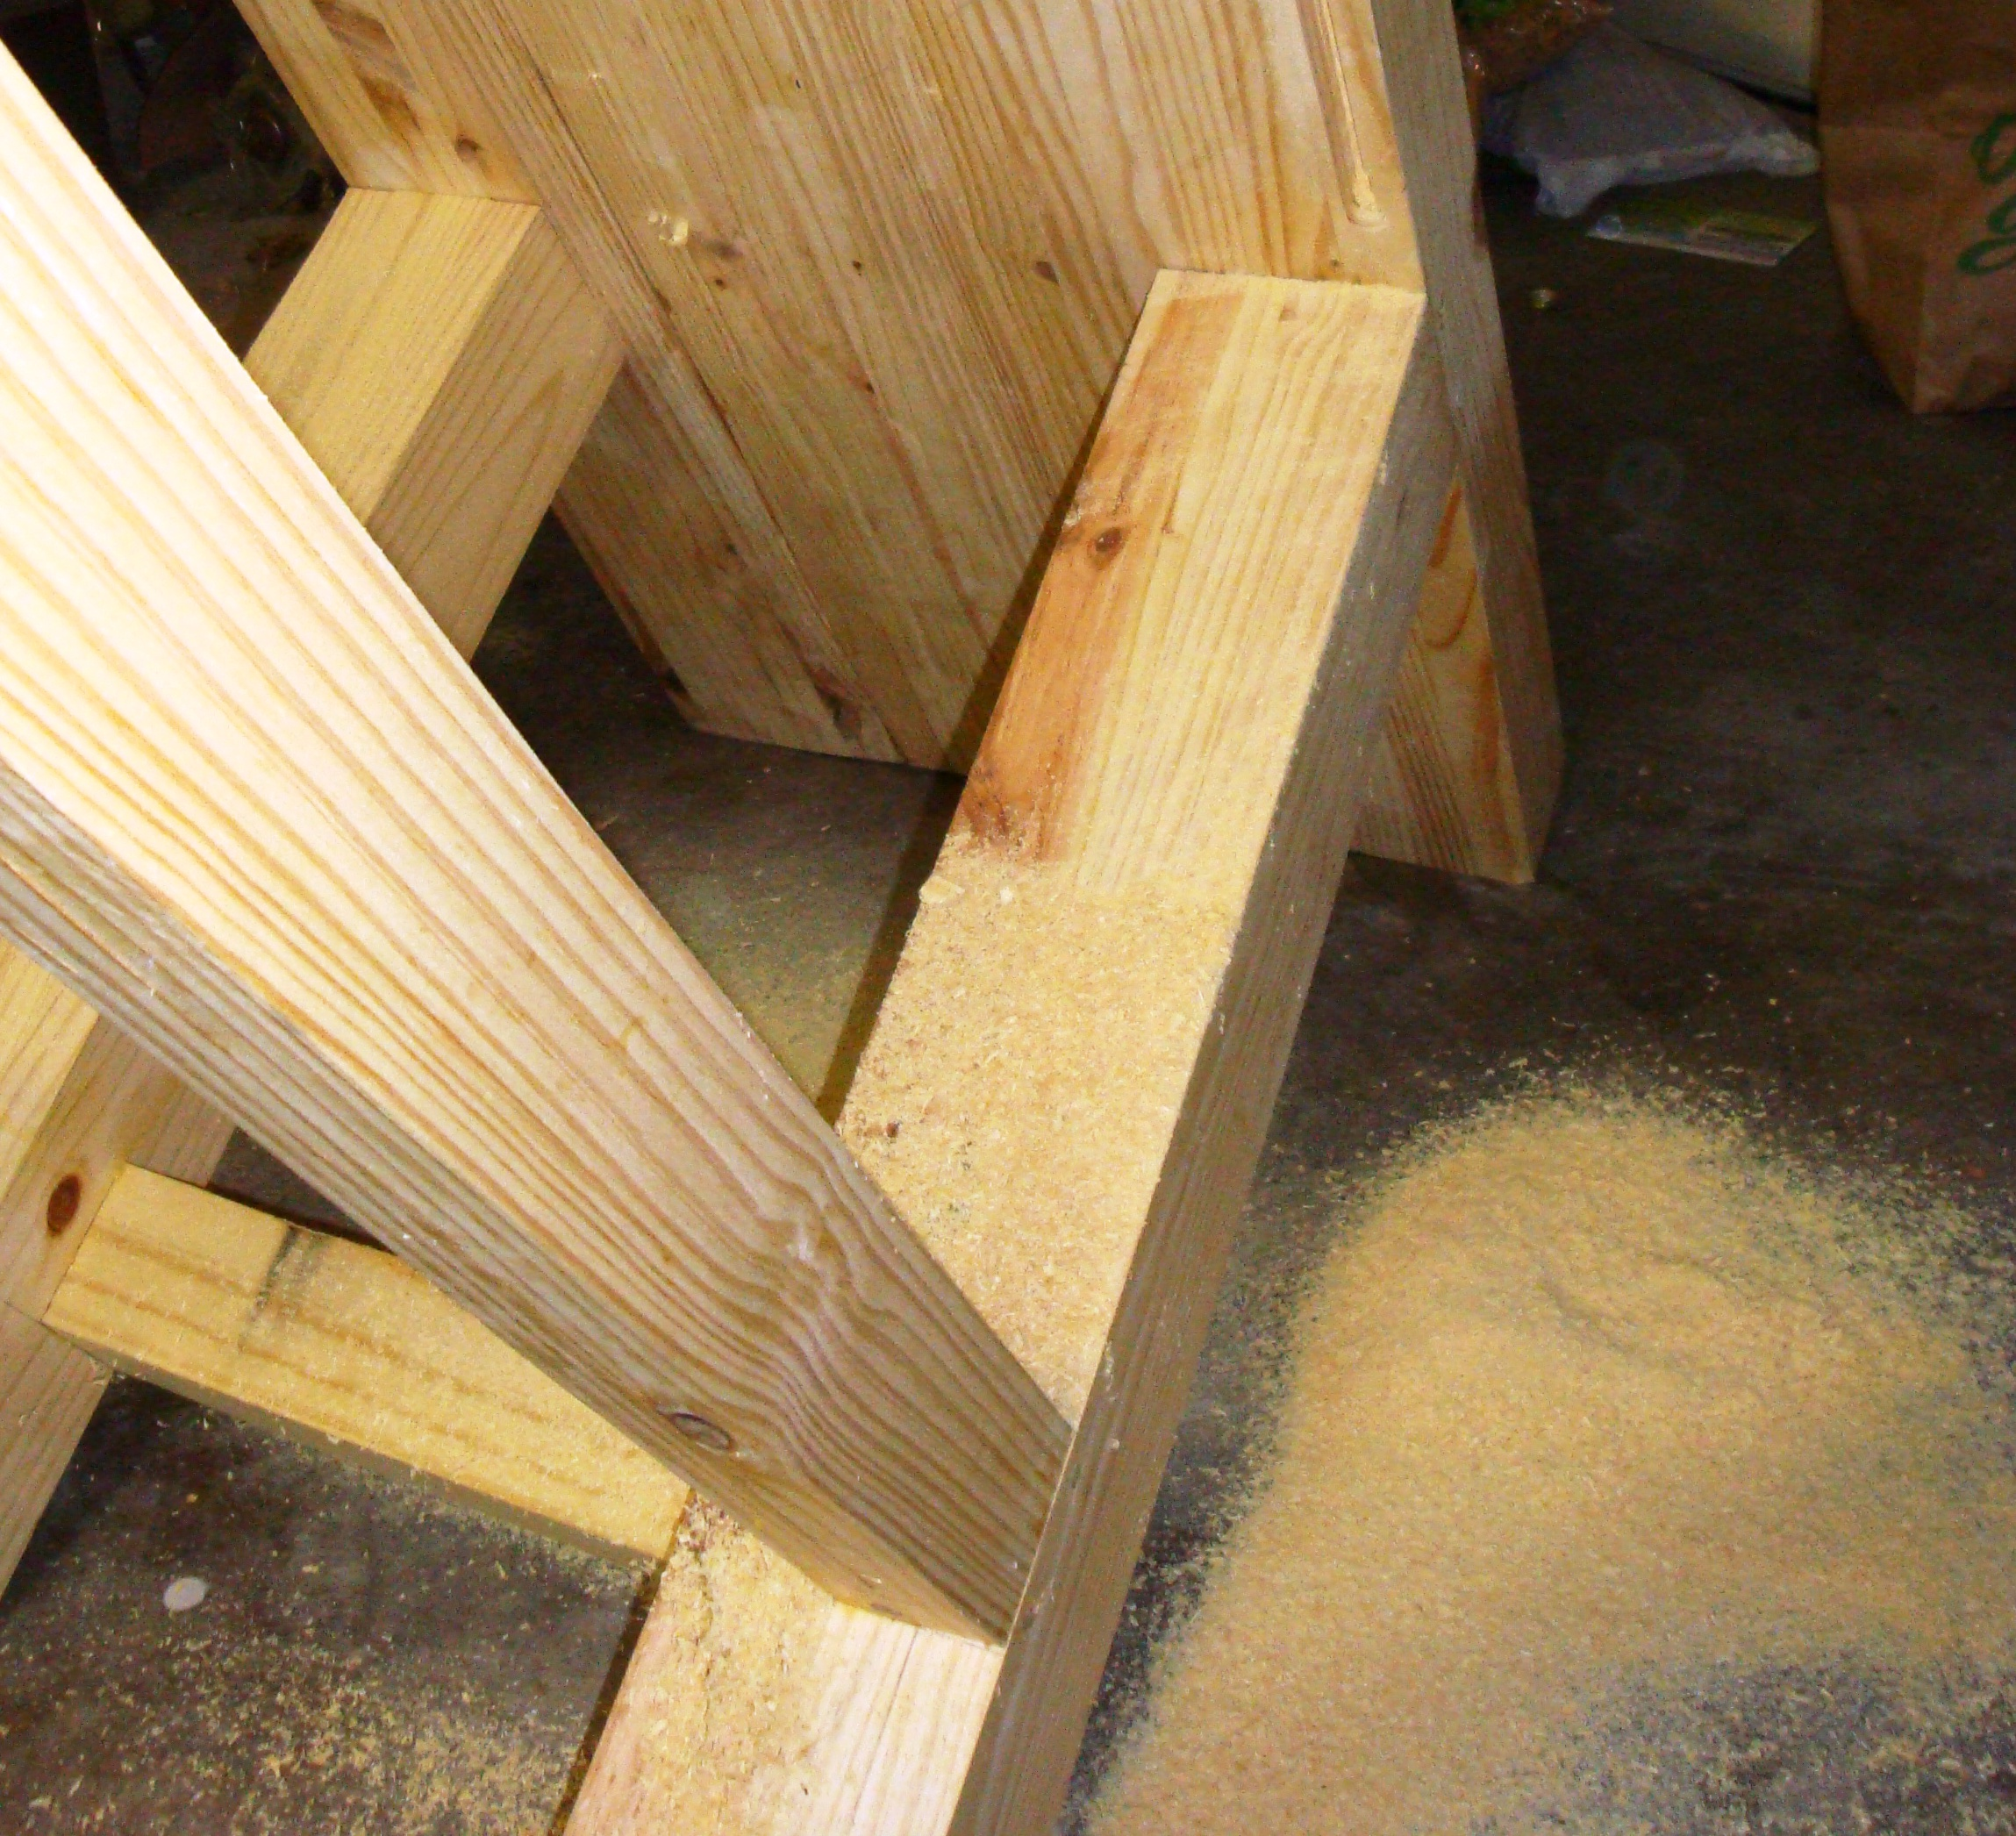 DIY Woodworking Classes Boston PDF Download japanese wood joinery methods | able54ogr